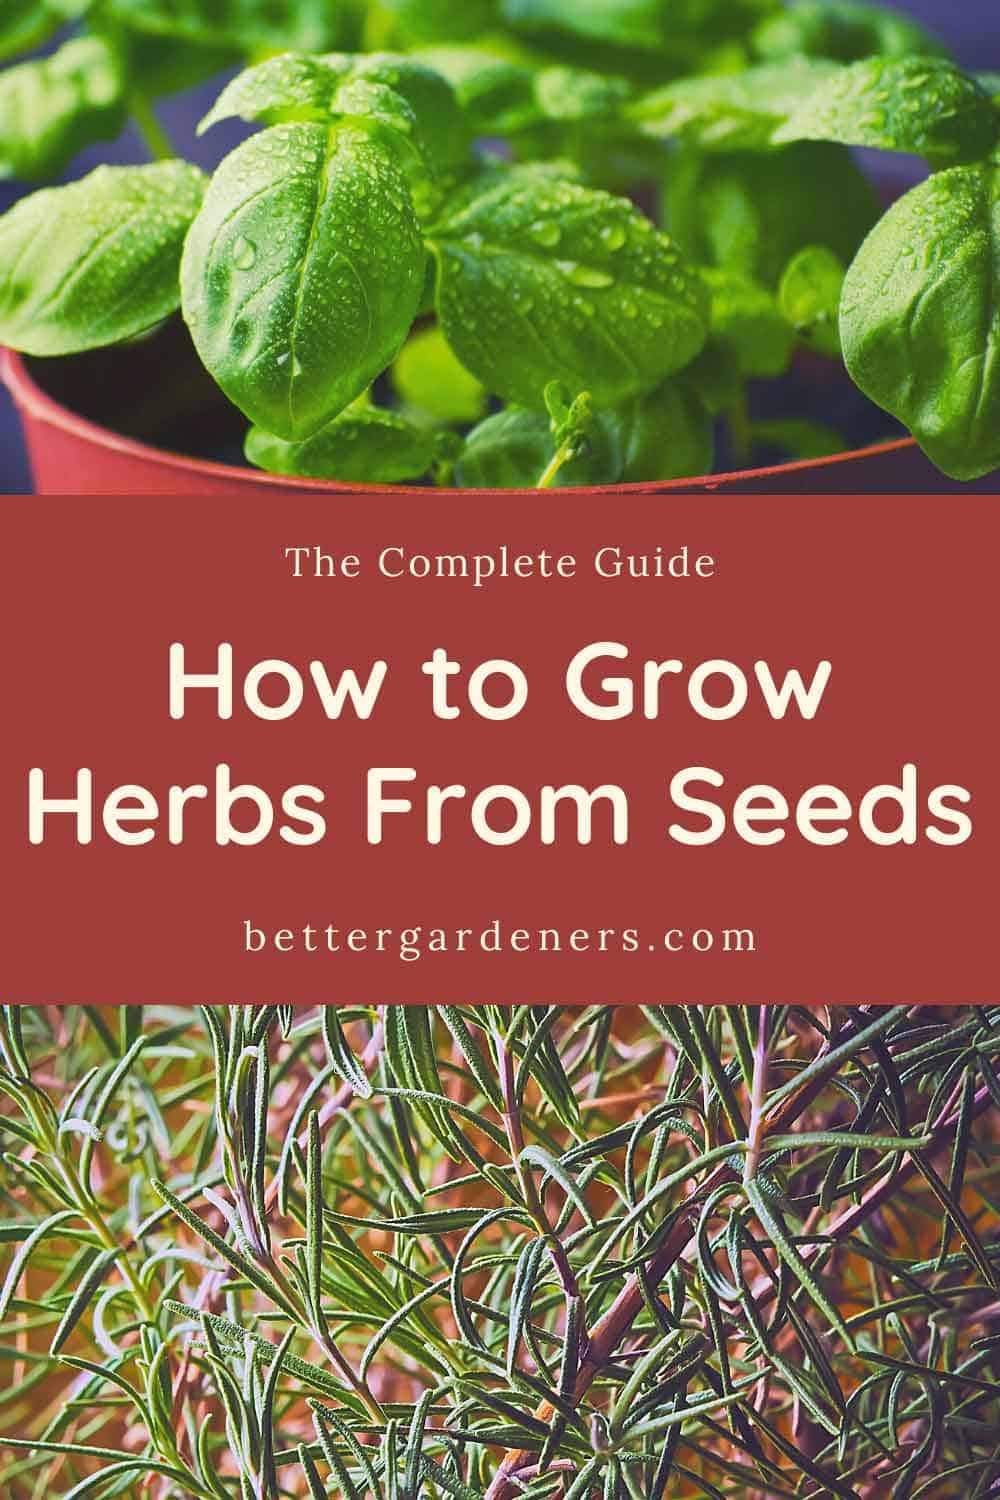 How to Grow Herbs from Seeds - Complete Beginners Guide